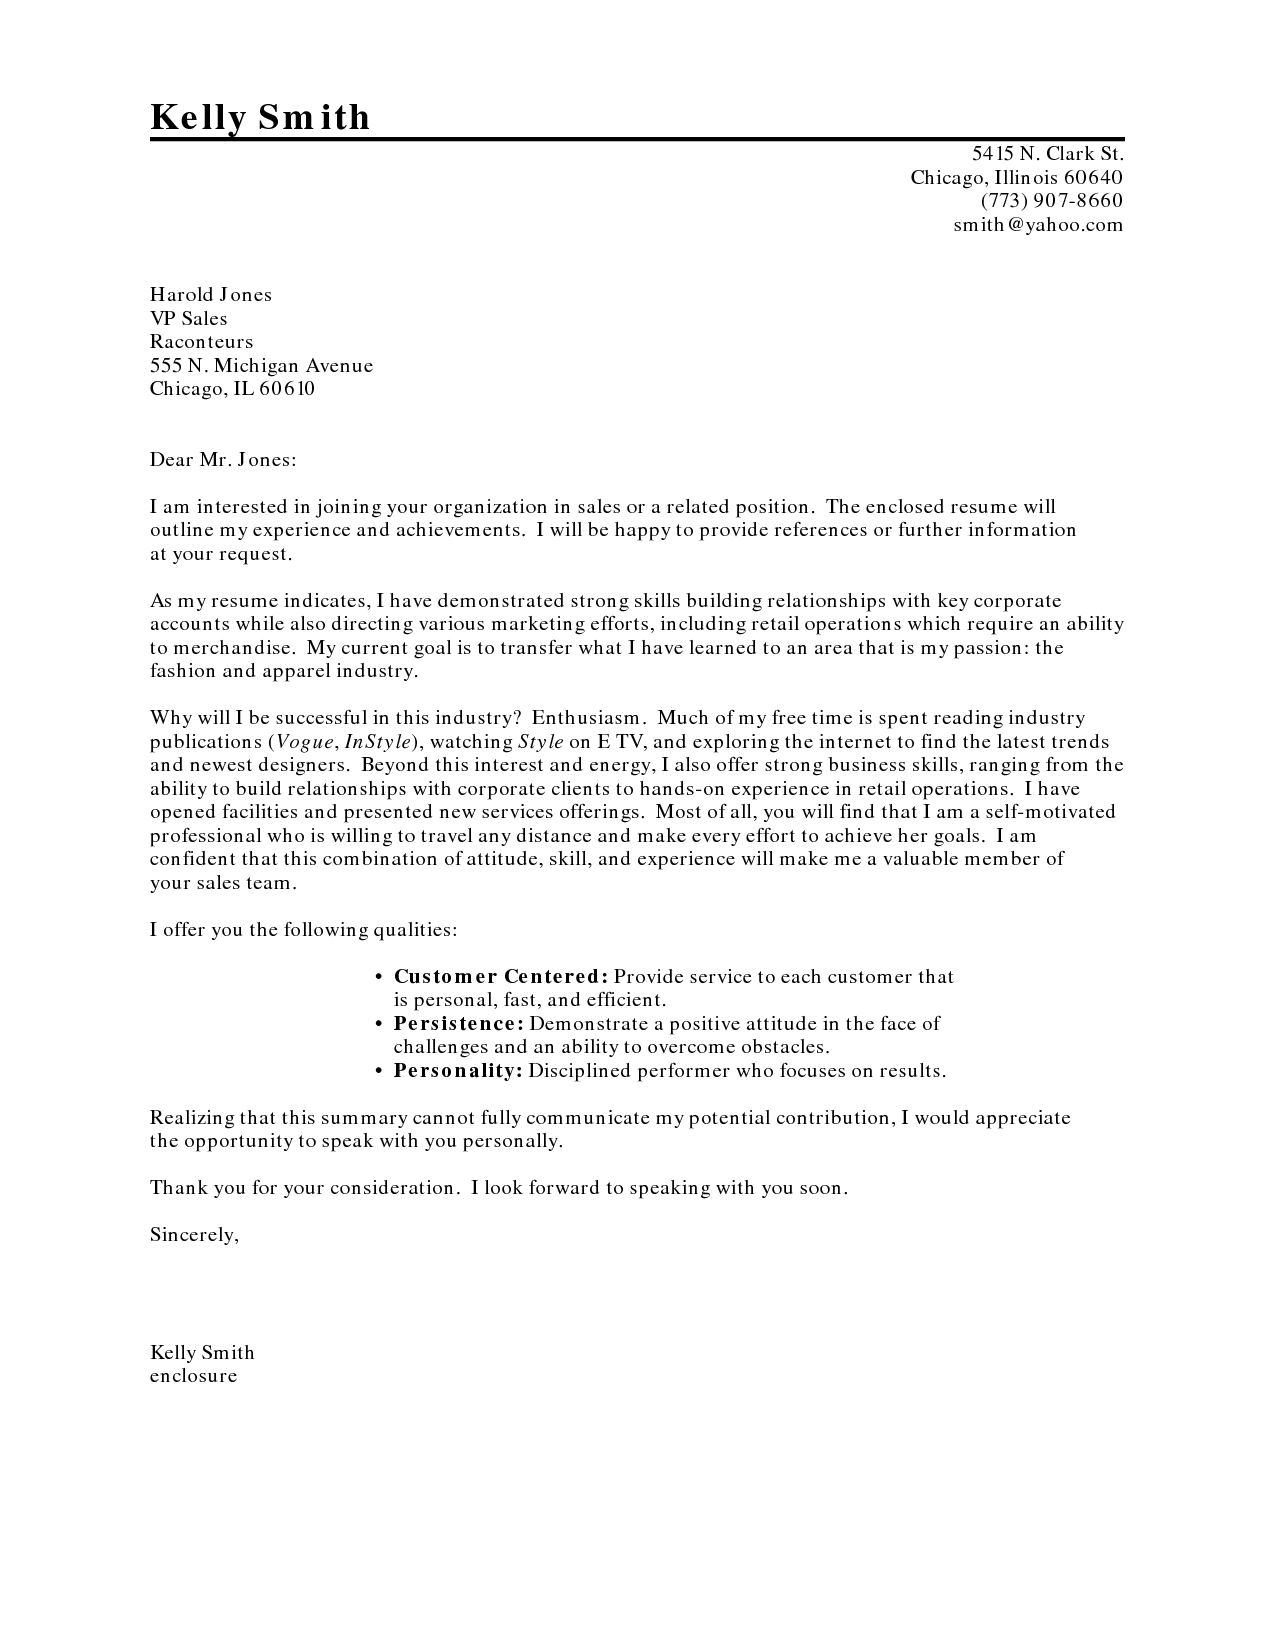 change of industry cover letter - 10 sample of career change cover letter